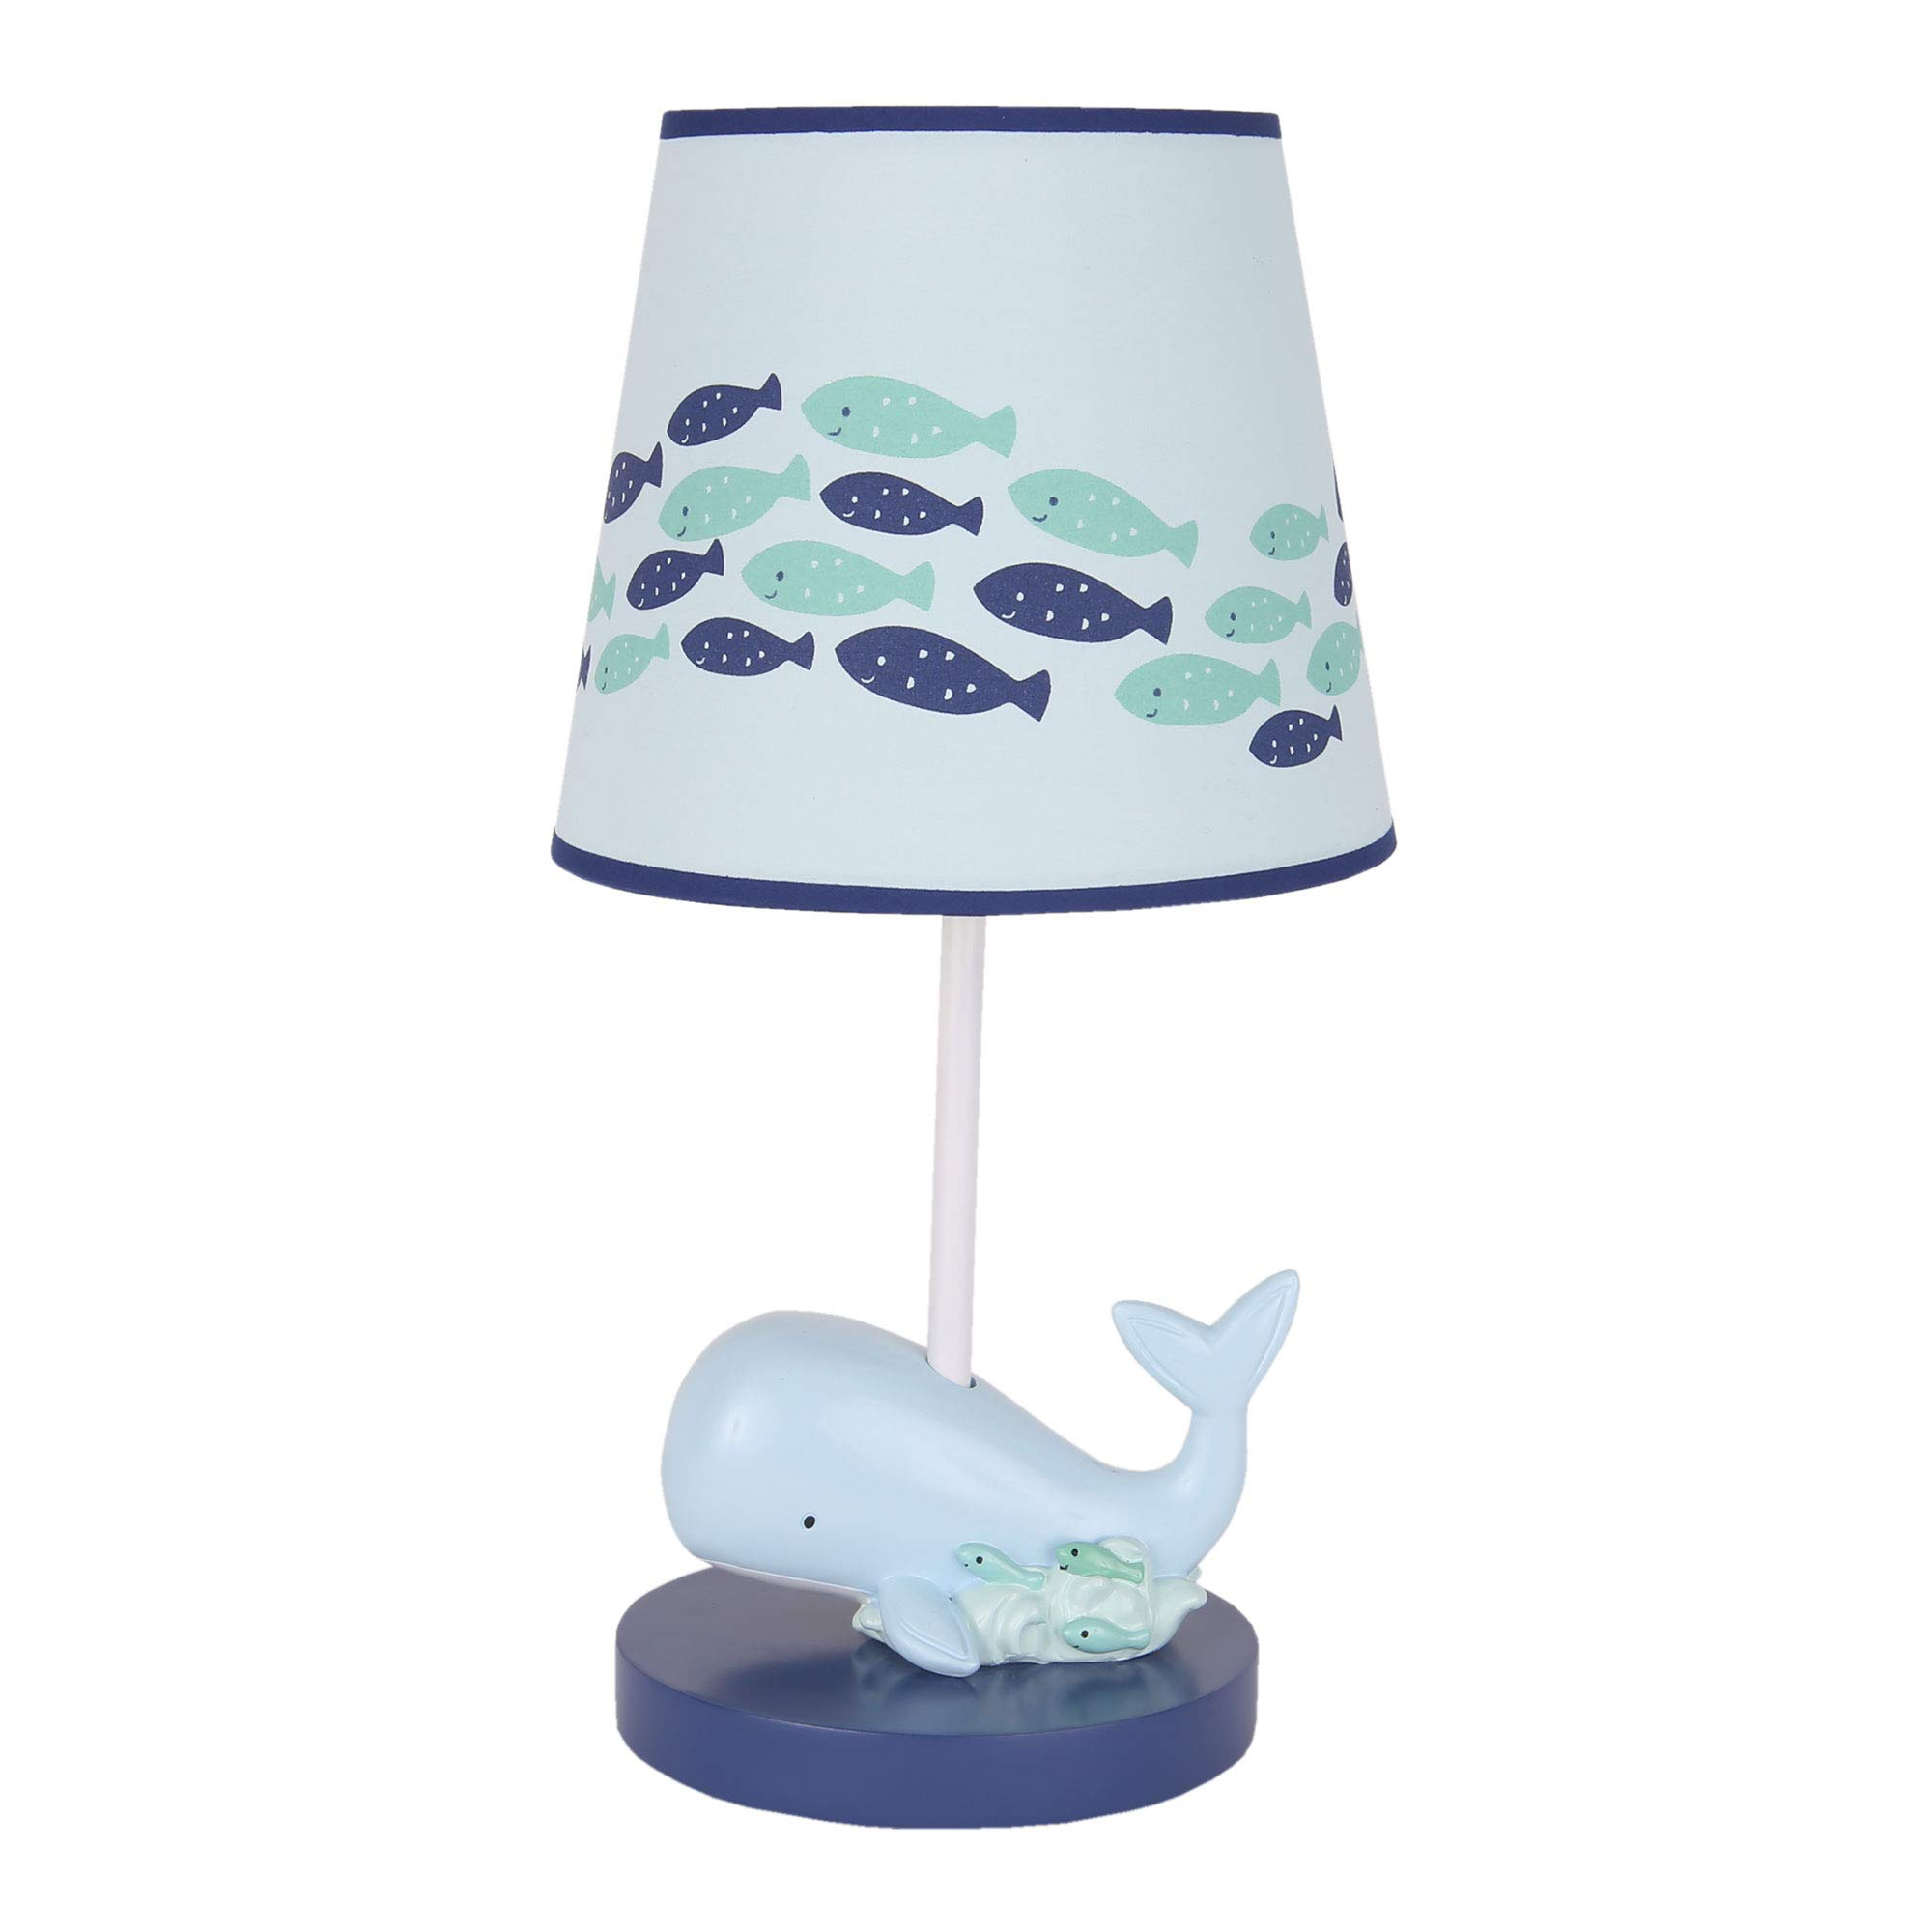 Lambs & Ivy Oceania Blue Ocean/Sea/Nautical Nursery Lamp with Shade & Bulb by Lambs & Ivy